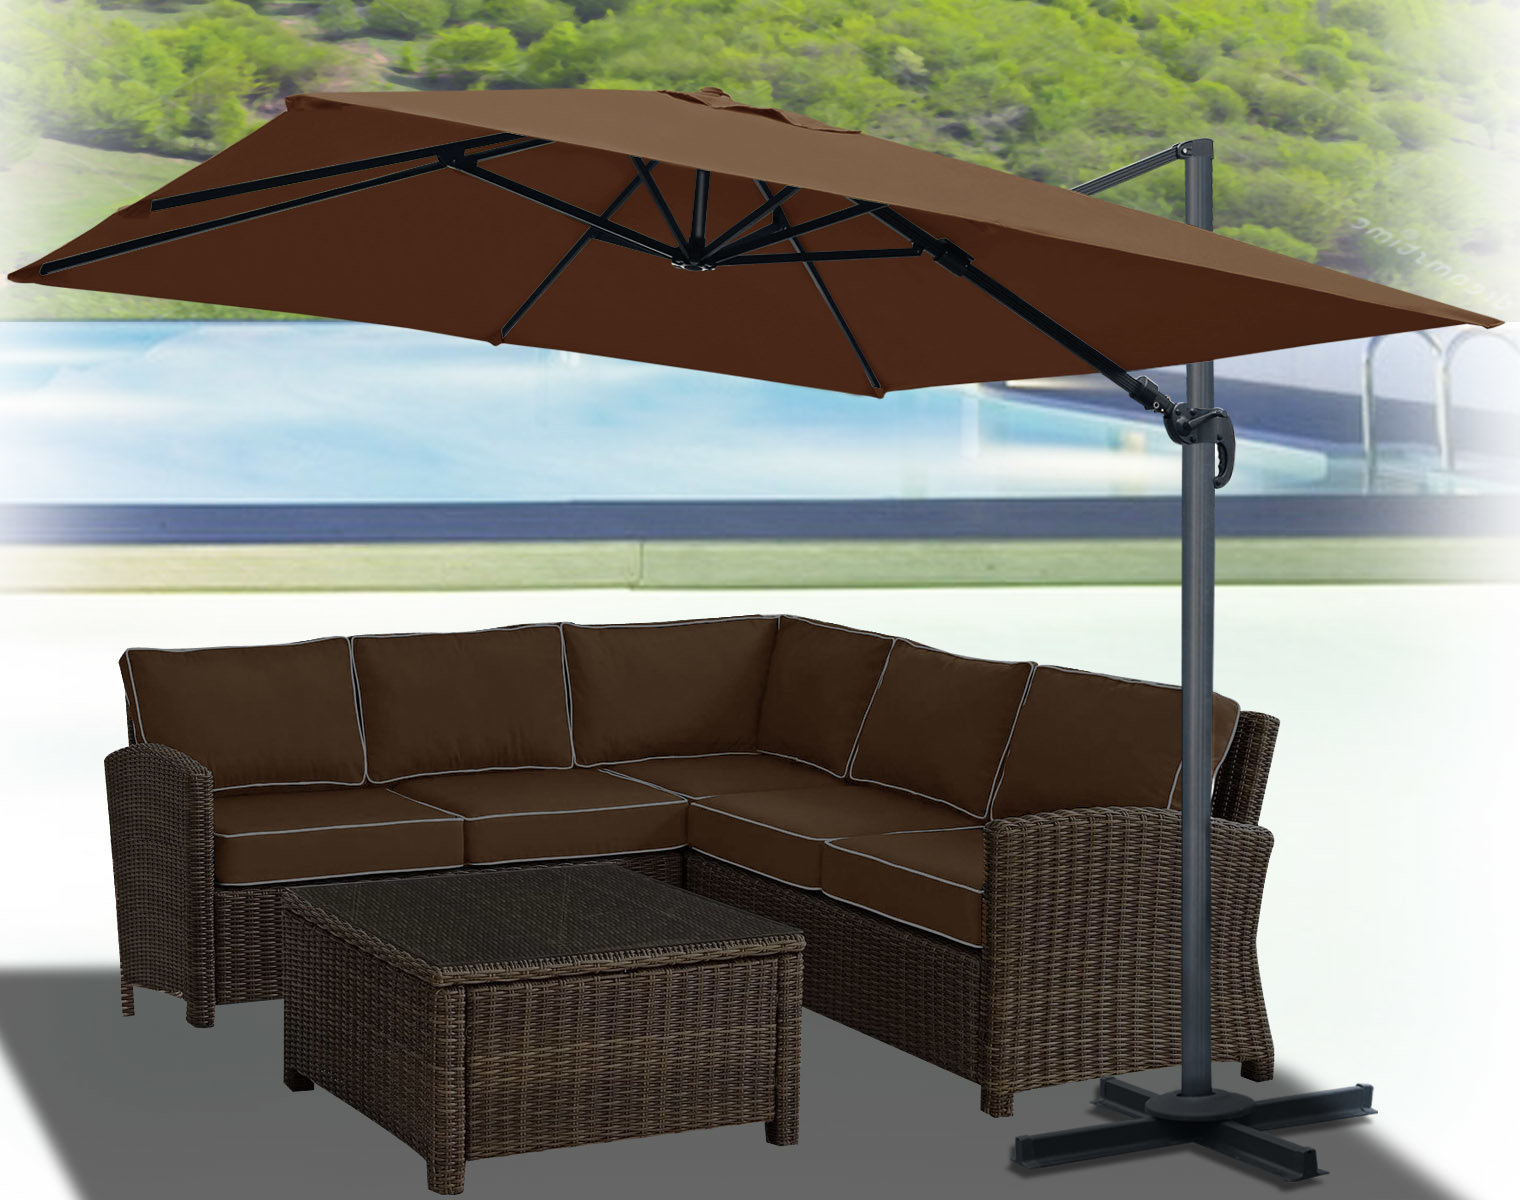 Klass Hanging Patio 10' Square Cantilever Umbrella Regarding Fashionable Spitler Square Cantilever Umbrellas (Gallery 4 of 20)